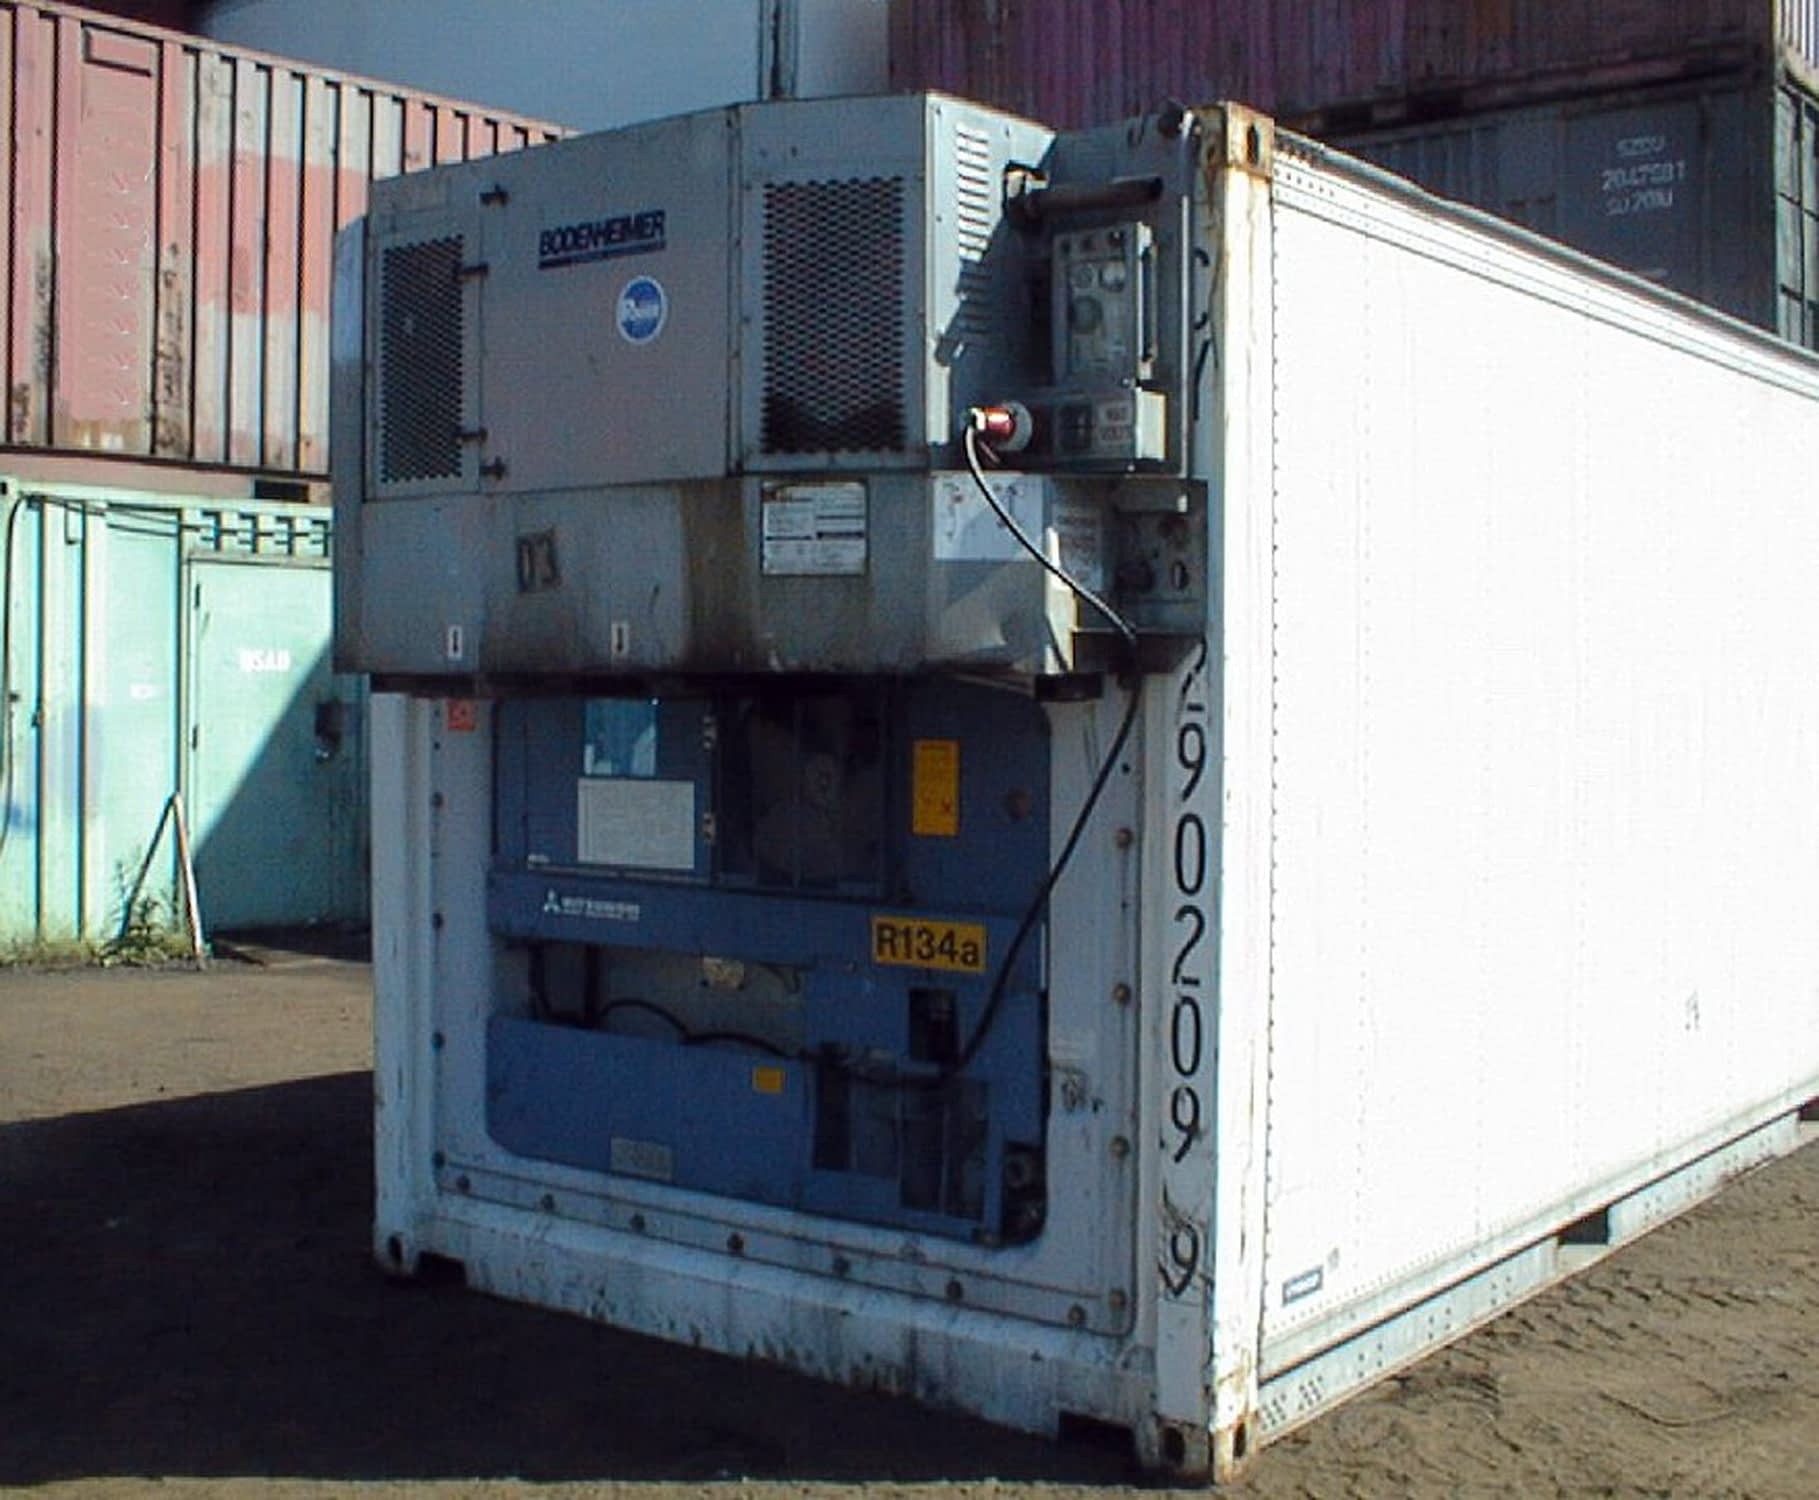 TRS sells TRS rents diesel gensets to power reefer containers while on the road or ocean.